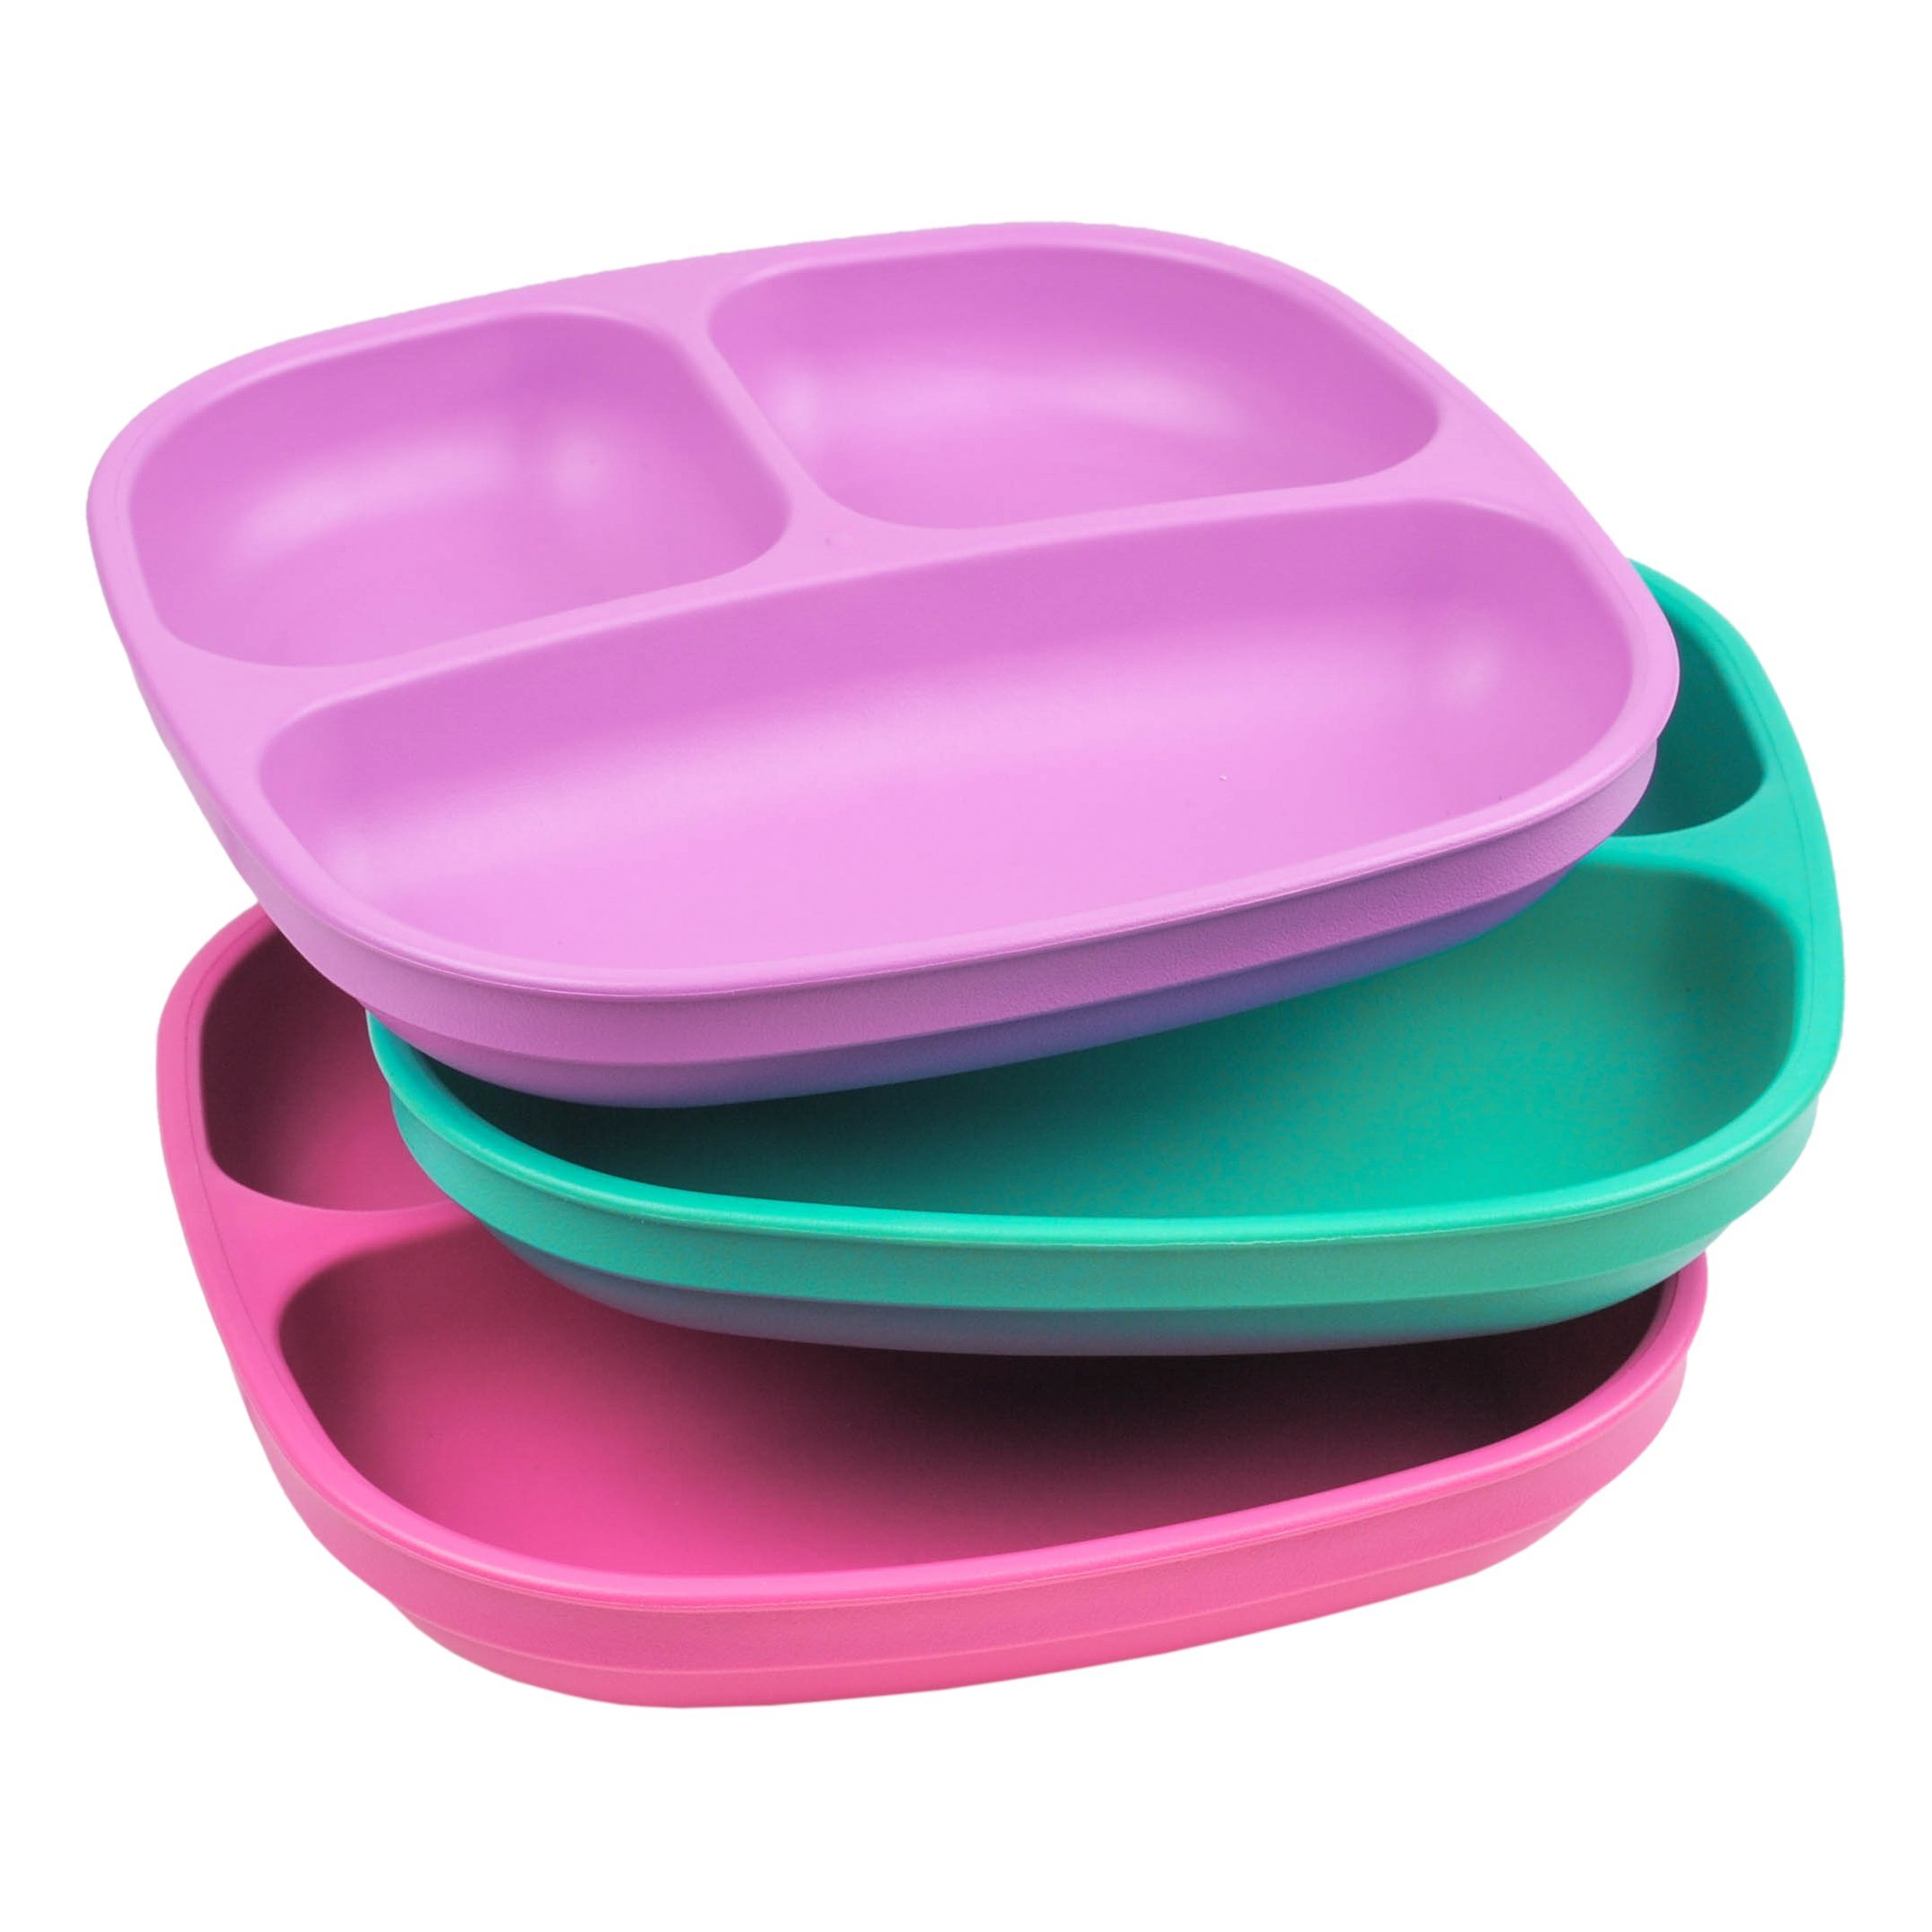 Re-Play Made in USA 3pk Divided Plates with Deep Sides for Easy Baby, Toddler, Child Feeding - Purple, Aqua & Pink (Sparkle) by Re Play